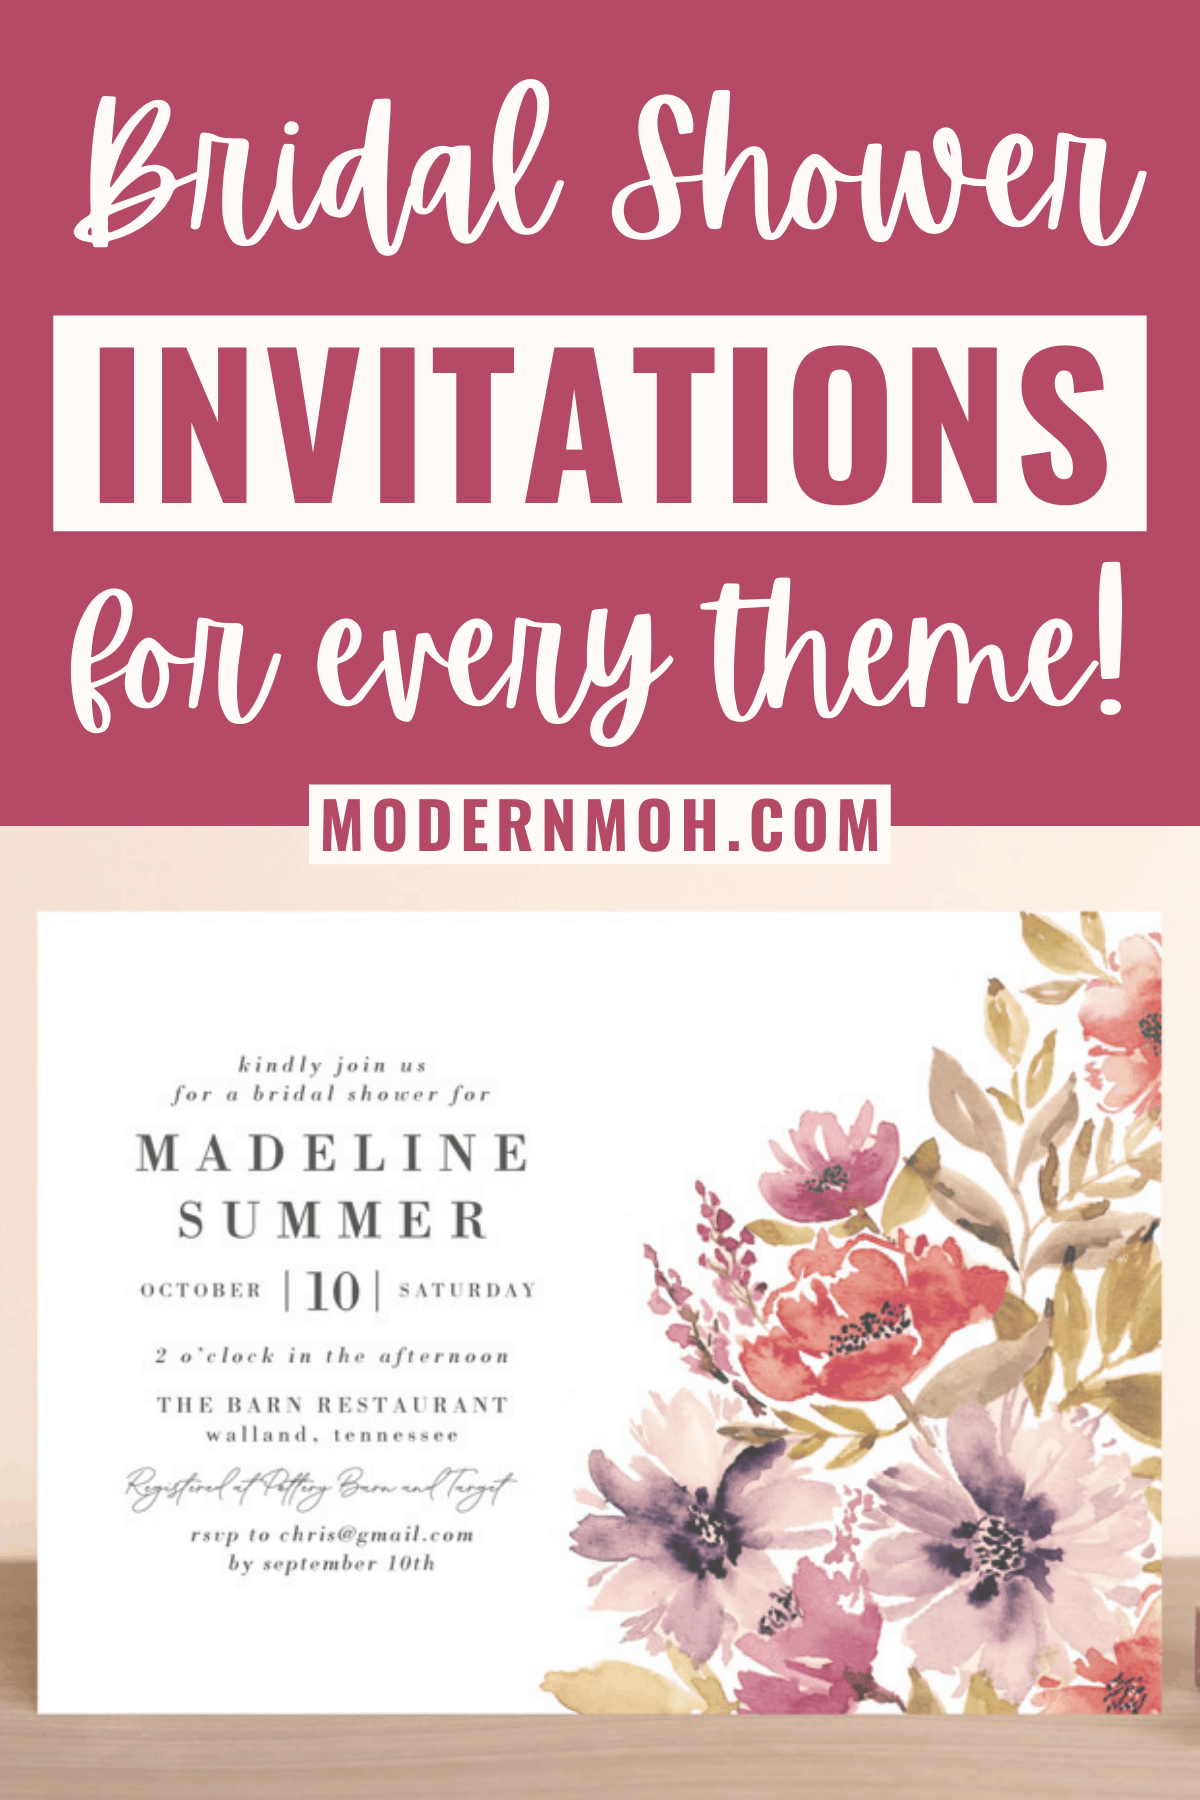 40 Bridal Shower Invitations to Match Any Theme